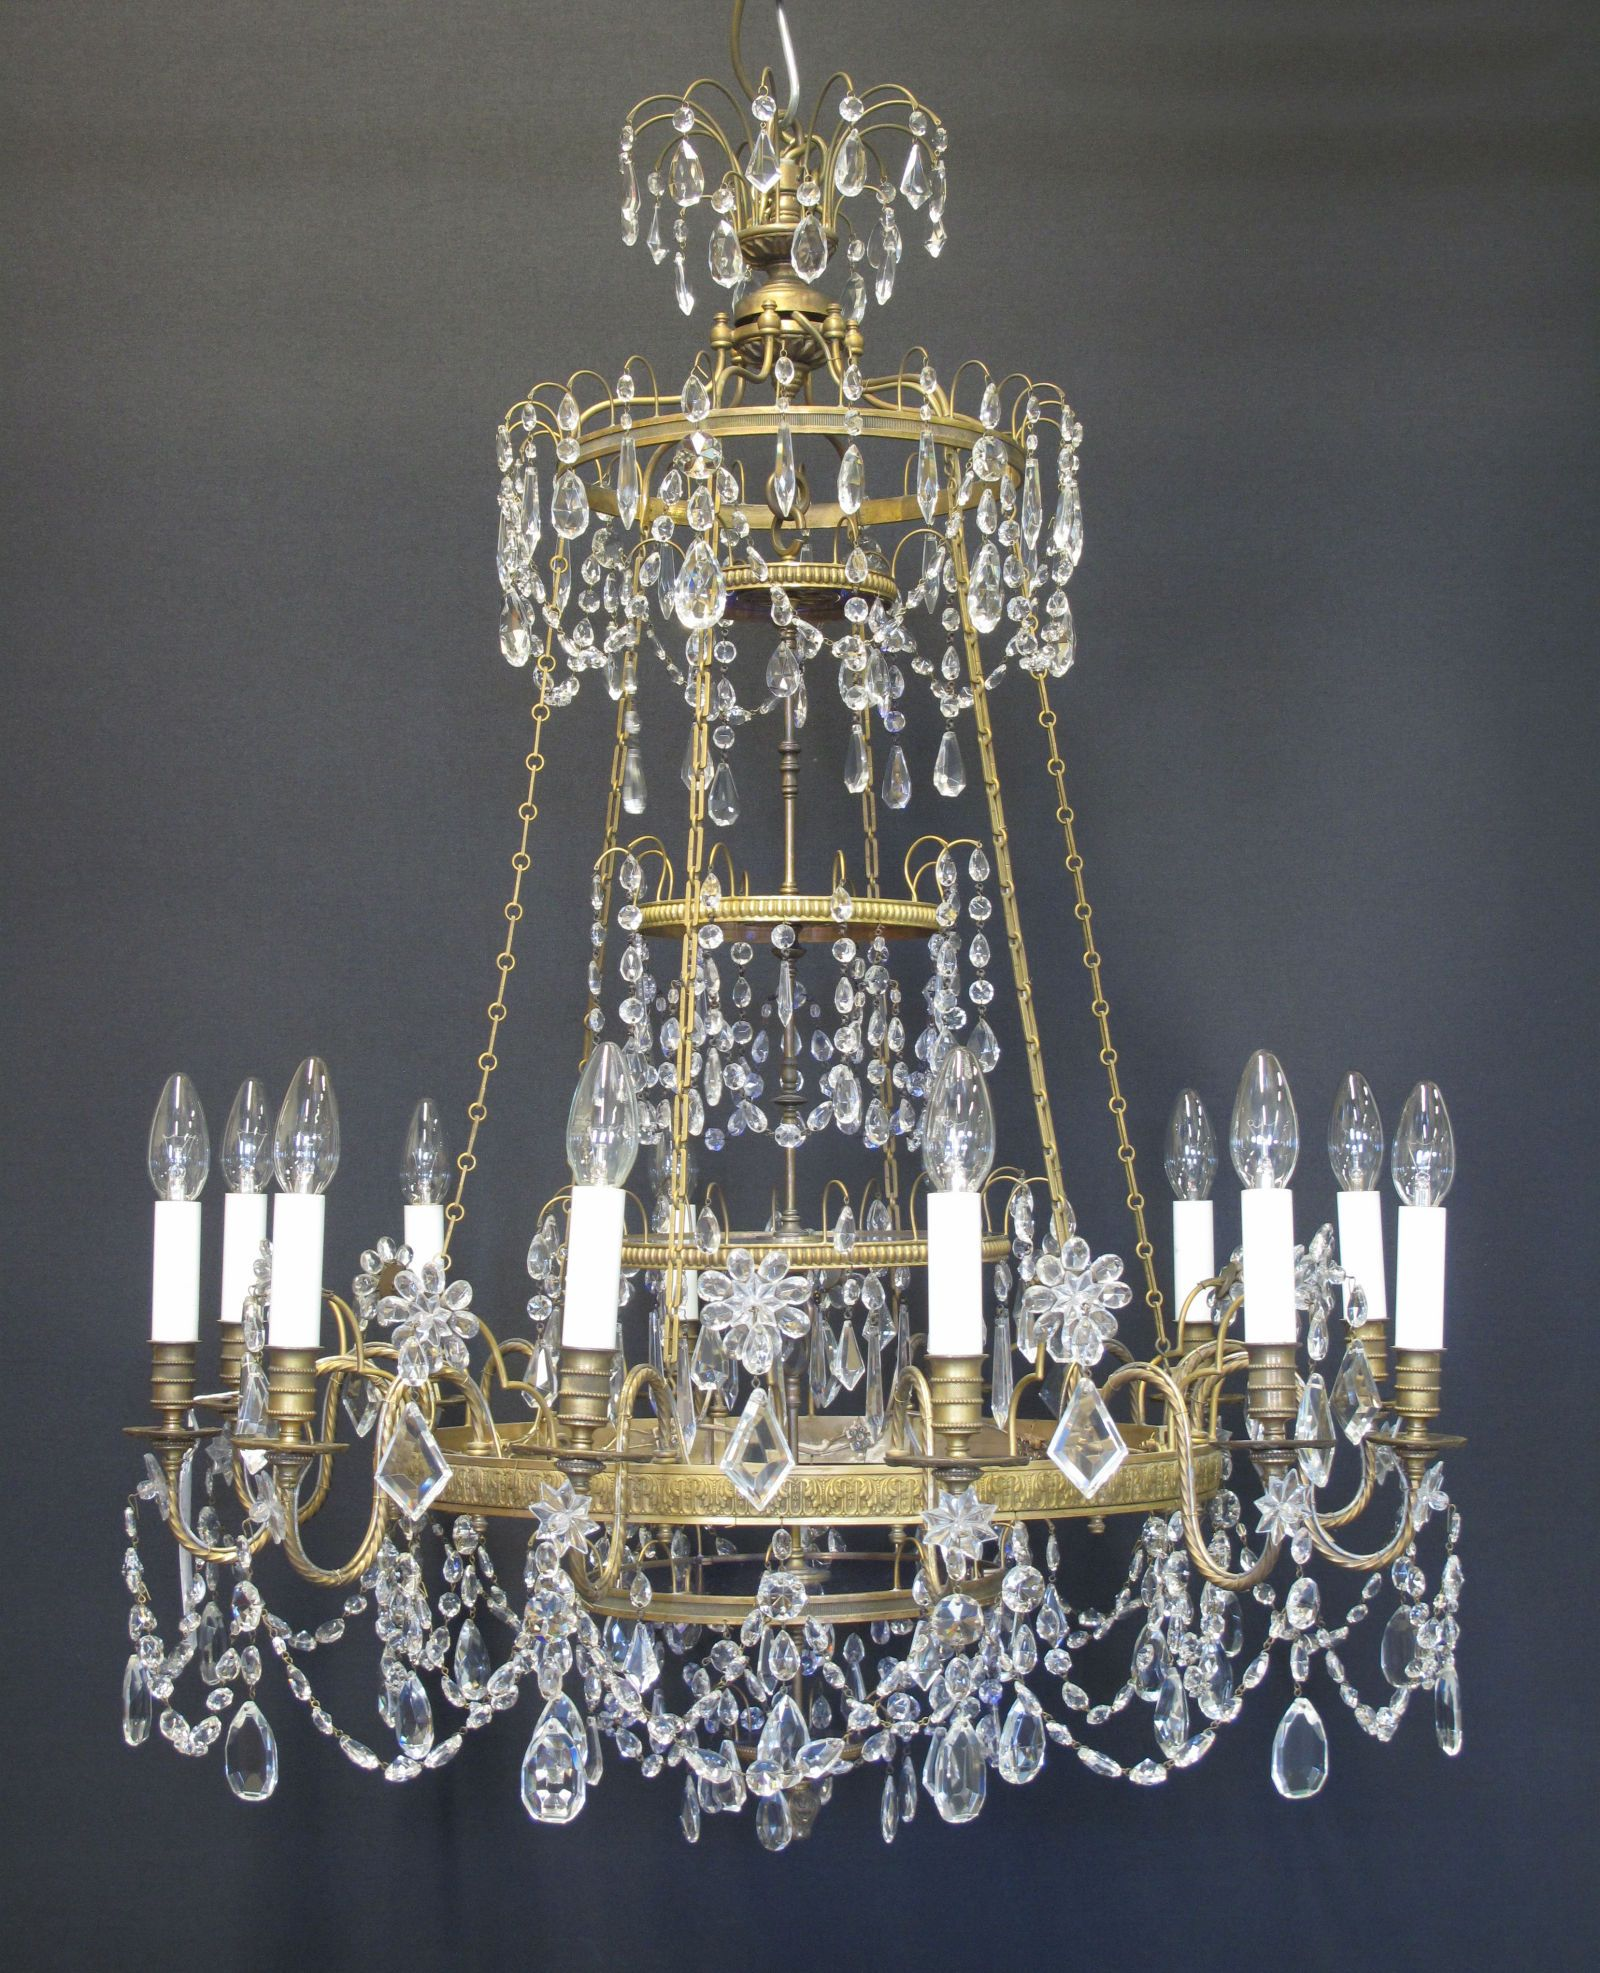 G p cohn antique chandeliers repairs restoration gorgeous g p cohn antique chandeliers repairs restoration arubaitofo Gallery